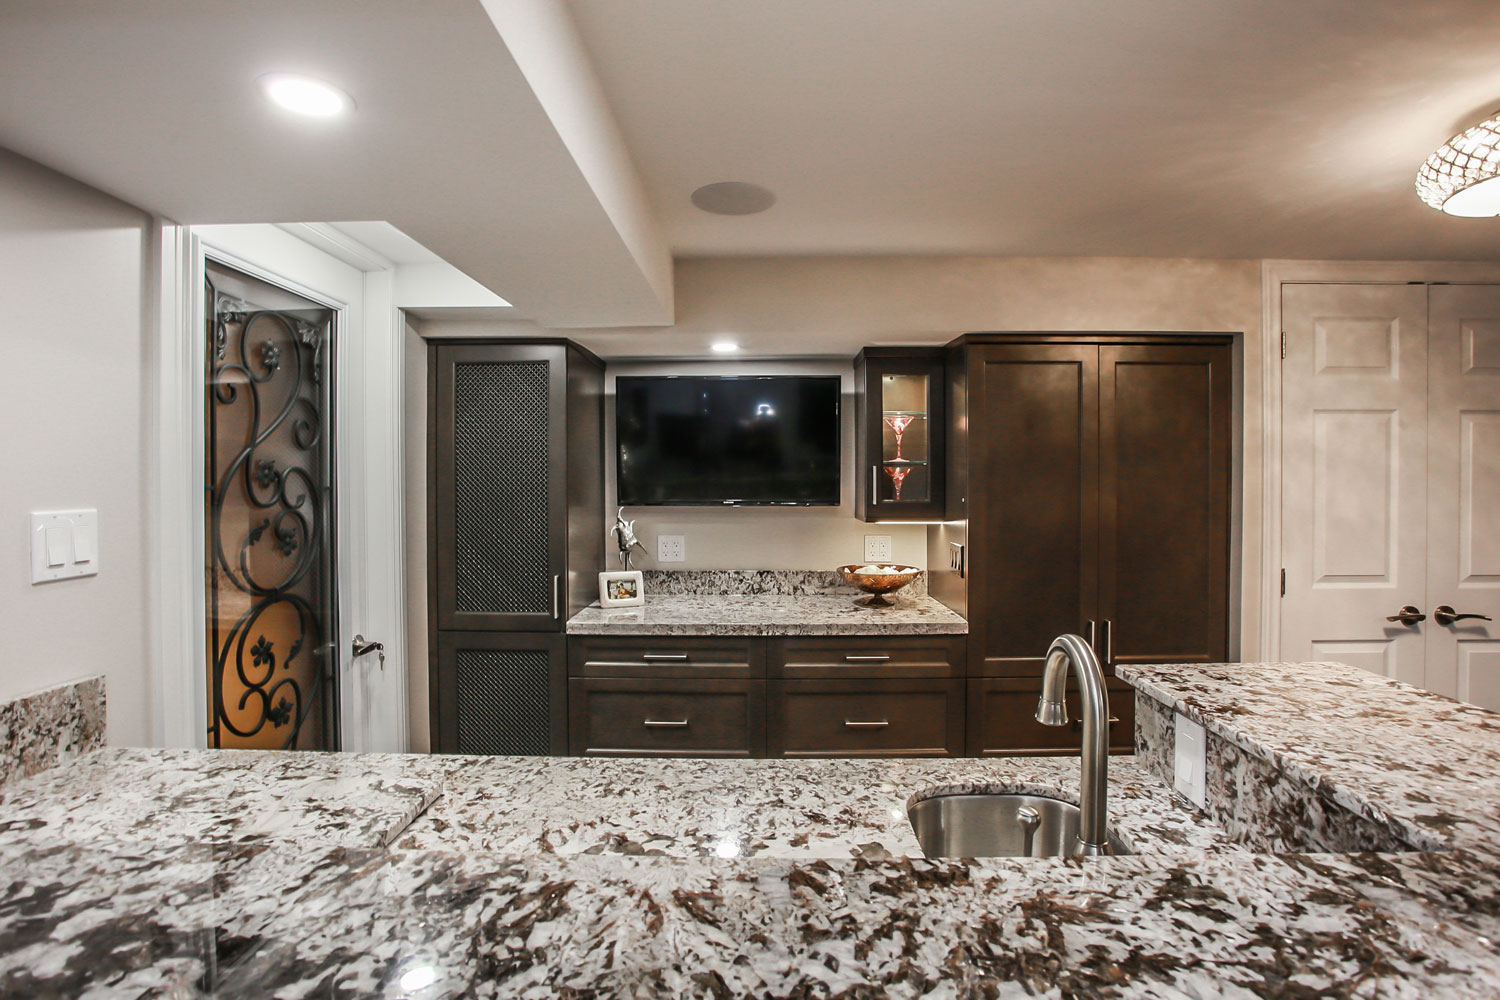 marble countertop basement suite kitchen